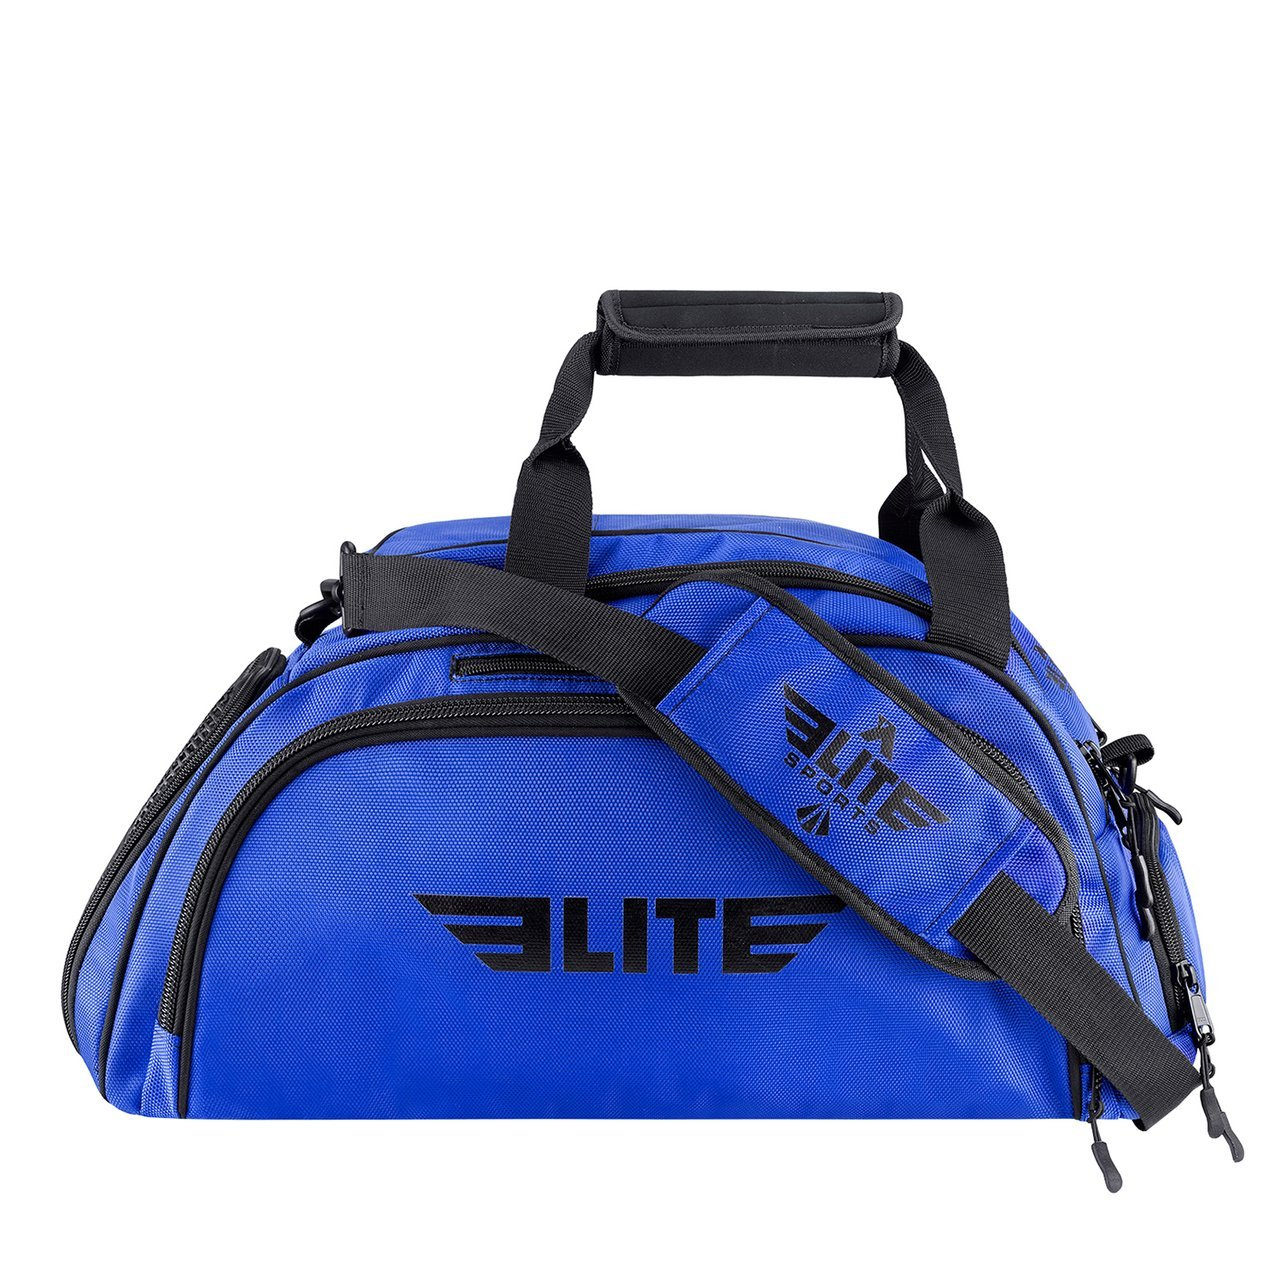 Load image into Gallery viewer, Elite Sports Warrior Series Blue Medium Duffel Wrestling Gear Gym Bag & Backpack